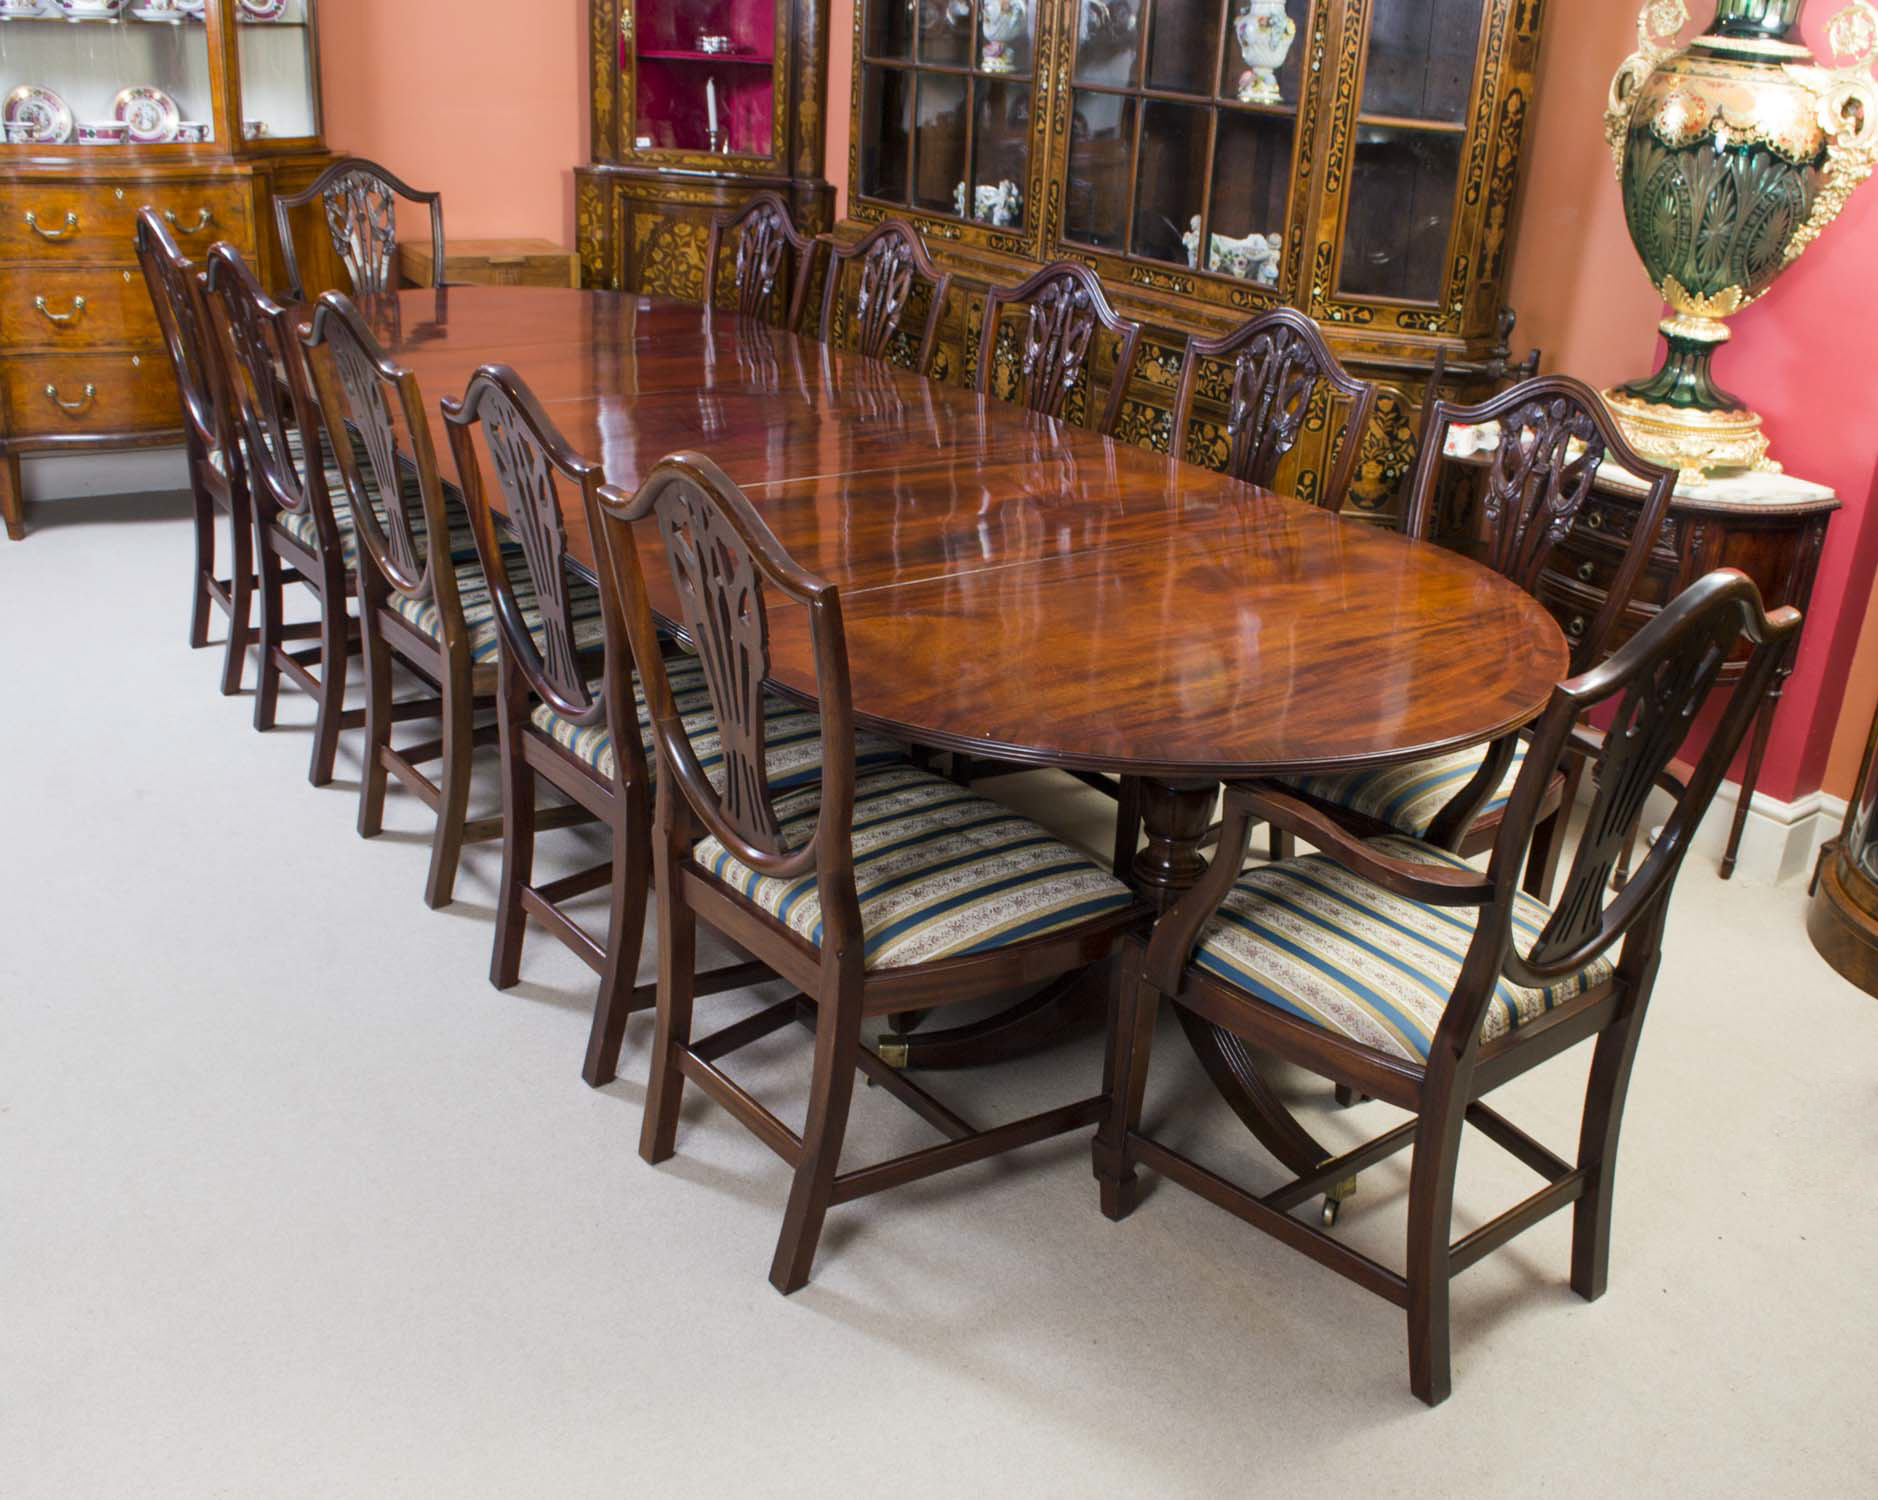 Dining Set 12 Chairs Antique Regency Dining Table And 12 Chairs C 1900